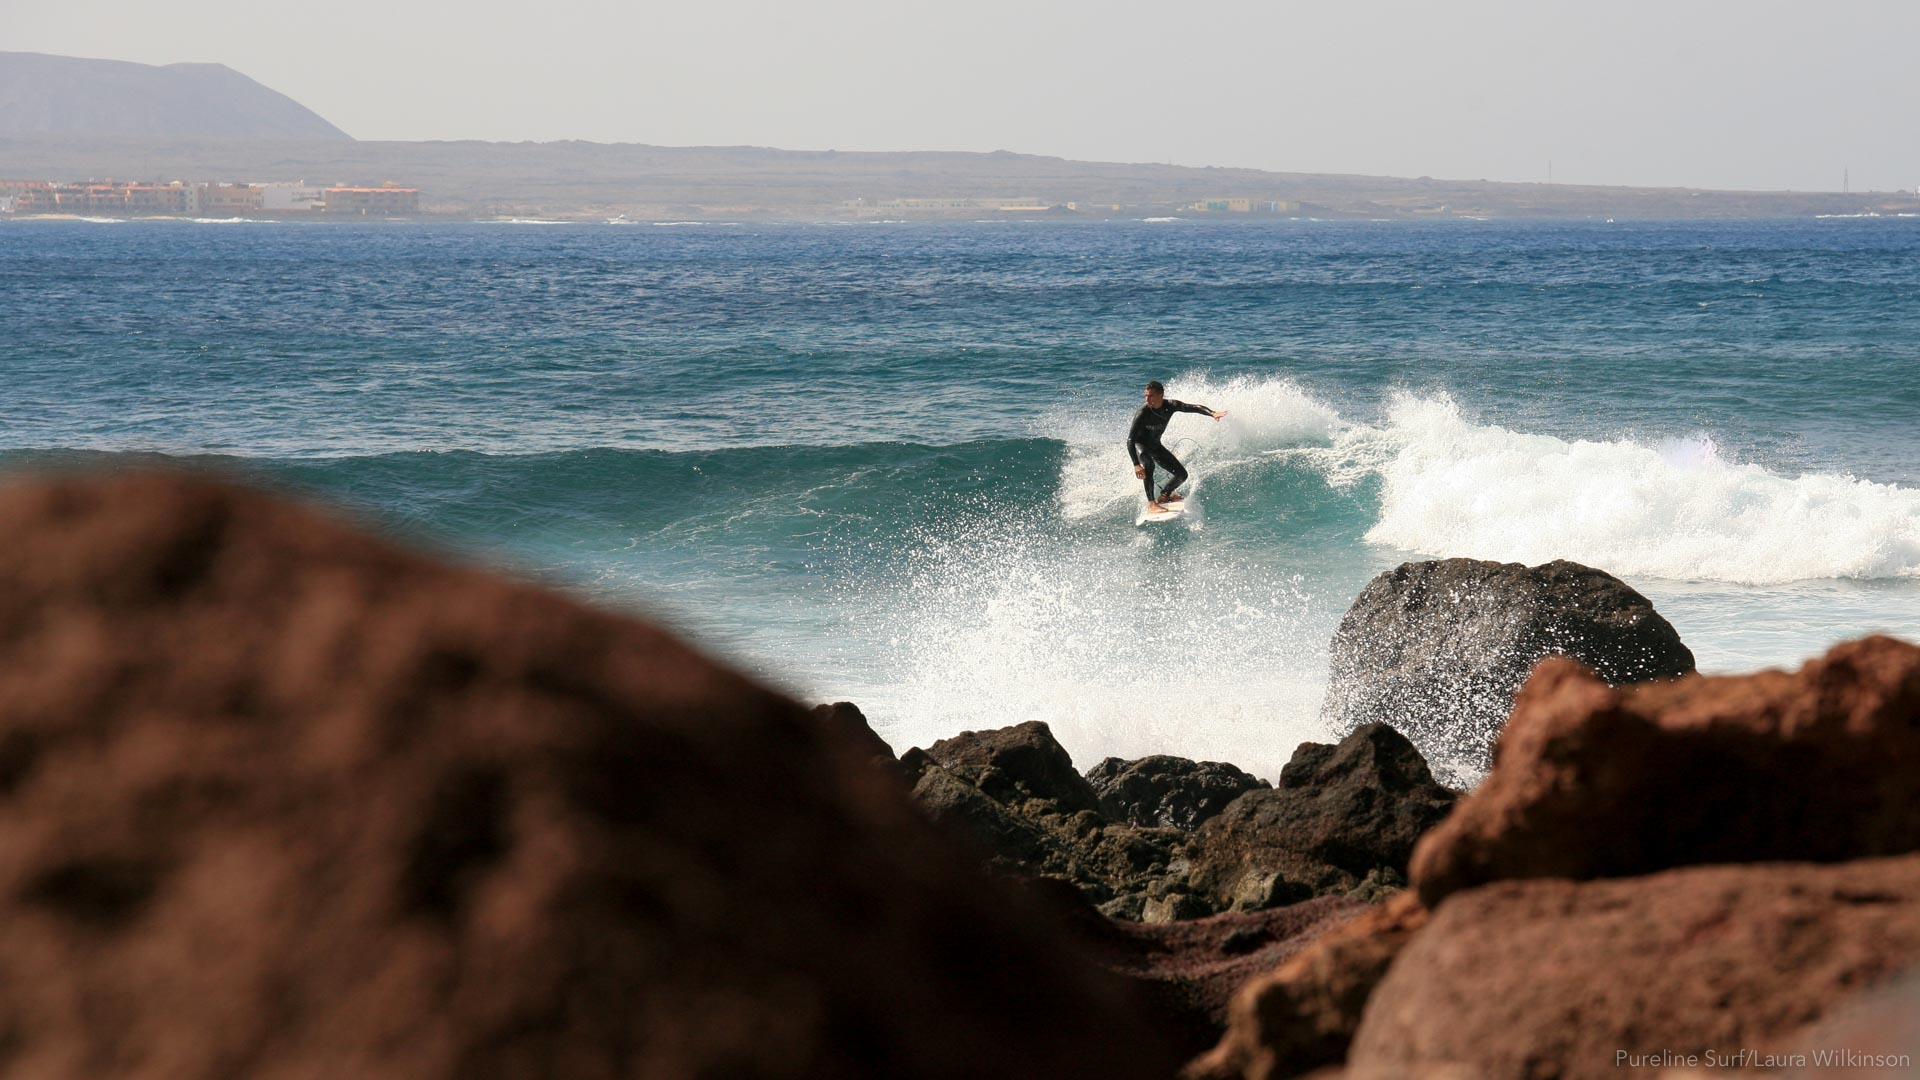 Lobos in Fuerteventura is one of the best right point breaks in the world.